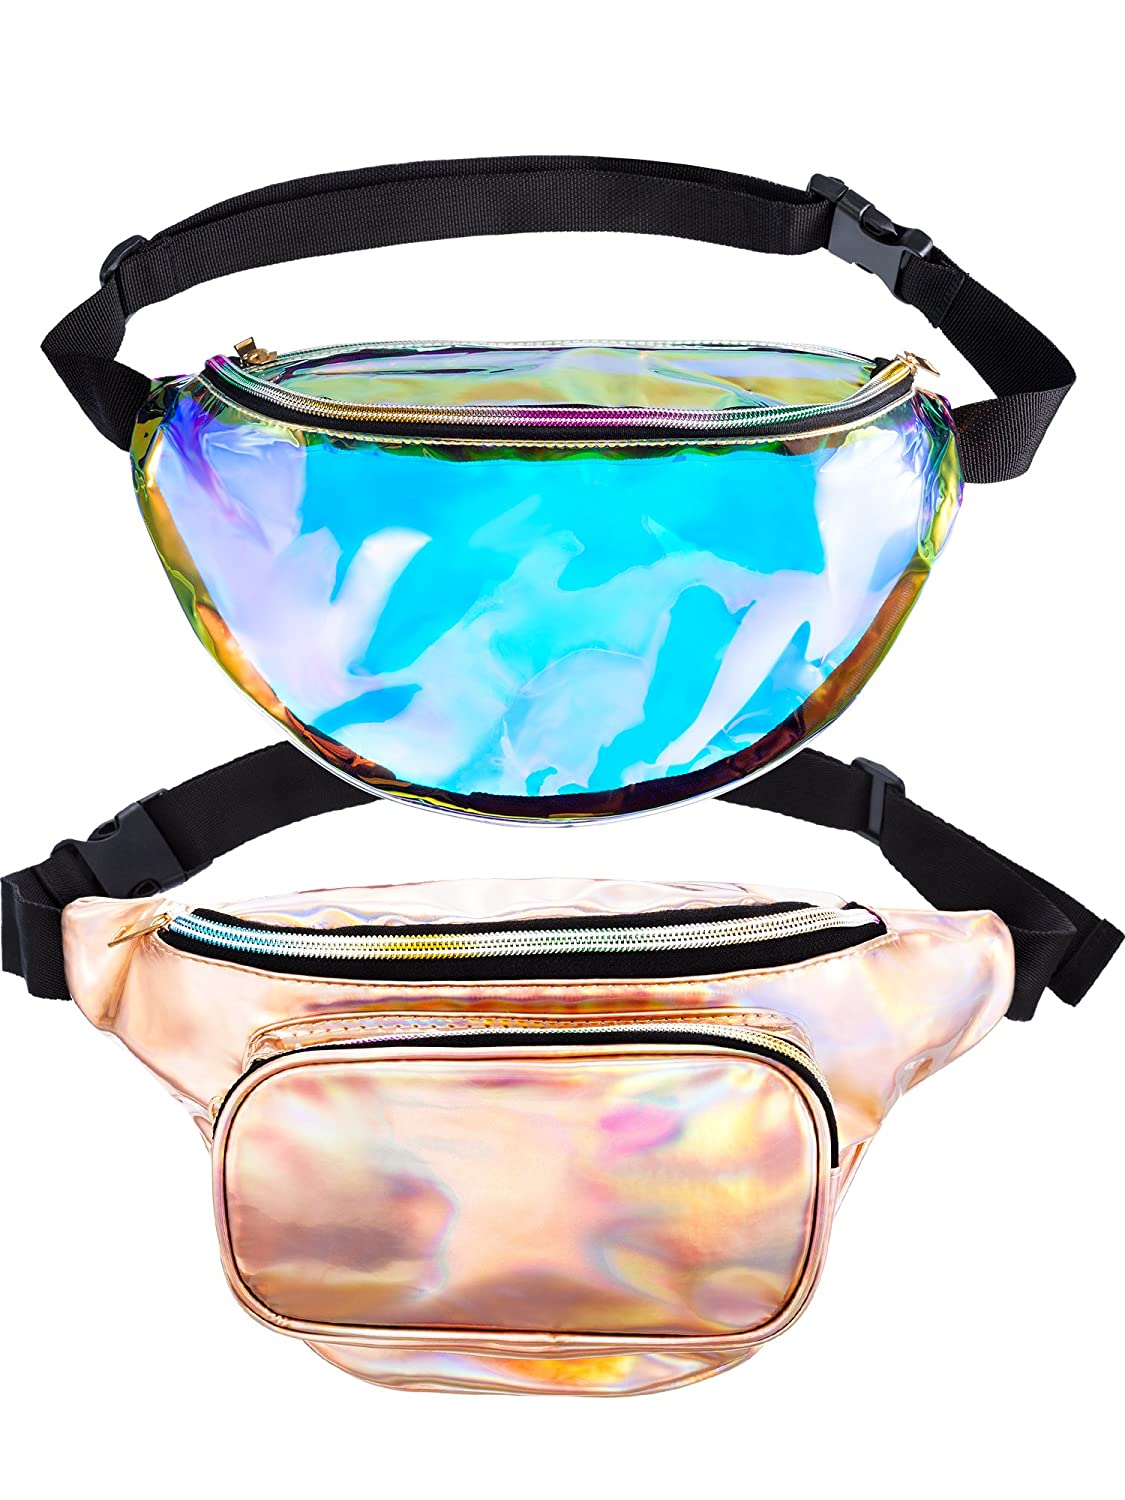 2 Pieces Fanny Holographic Packs Shiny Waist Bag Fashion Bum Bag with Adjustable Belt for Women Boao